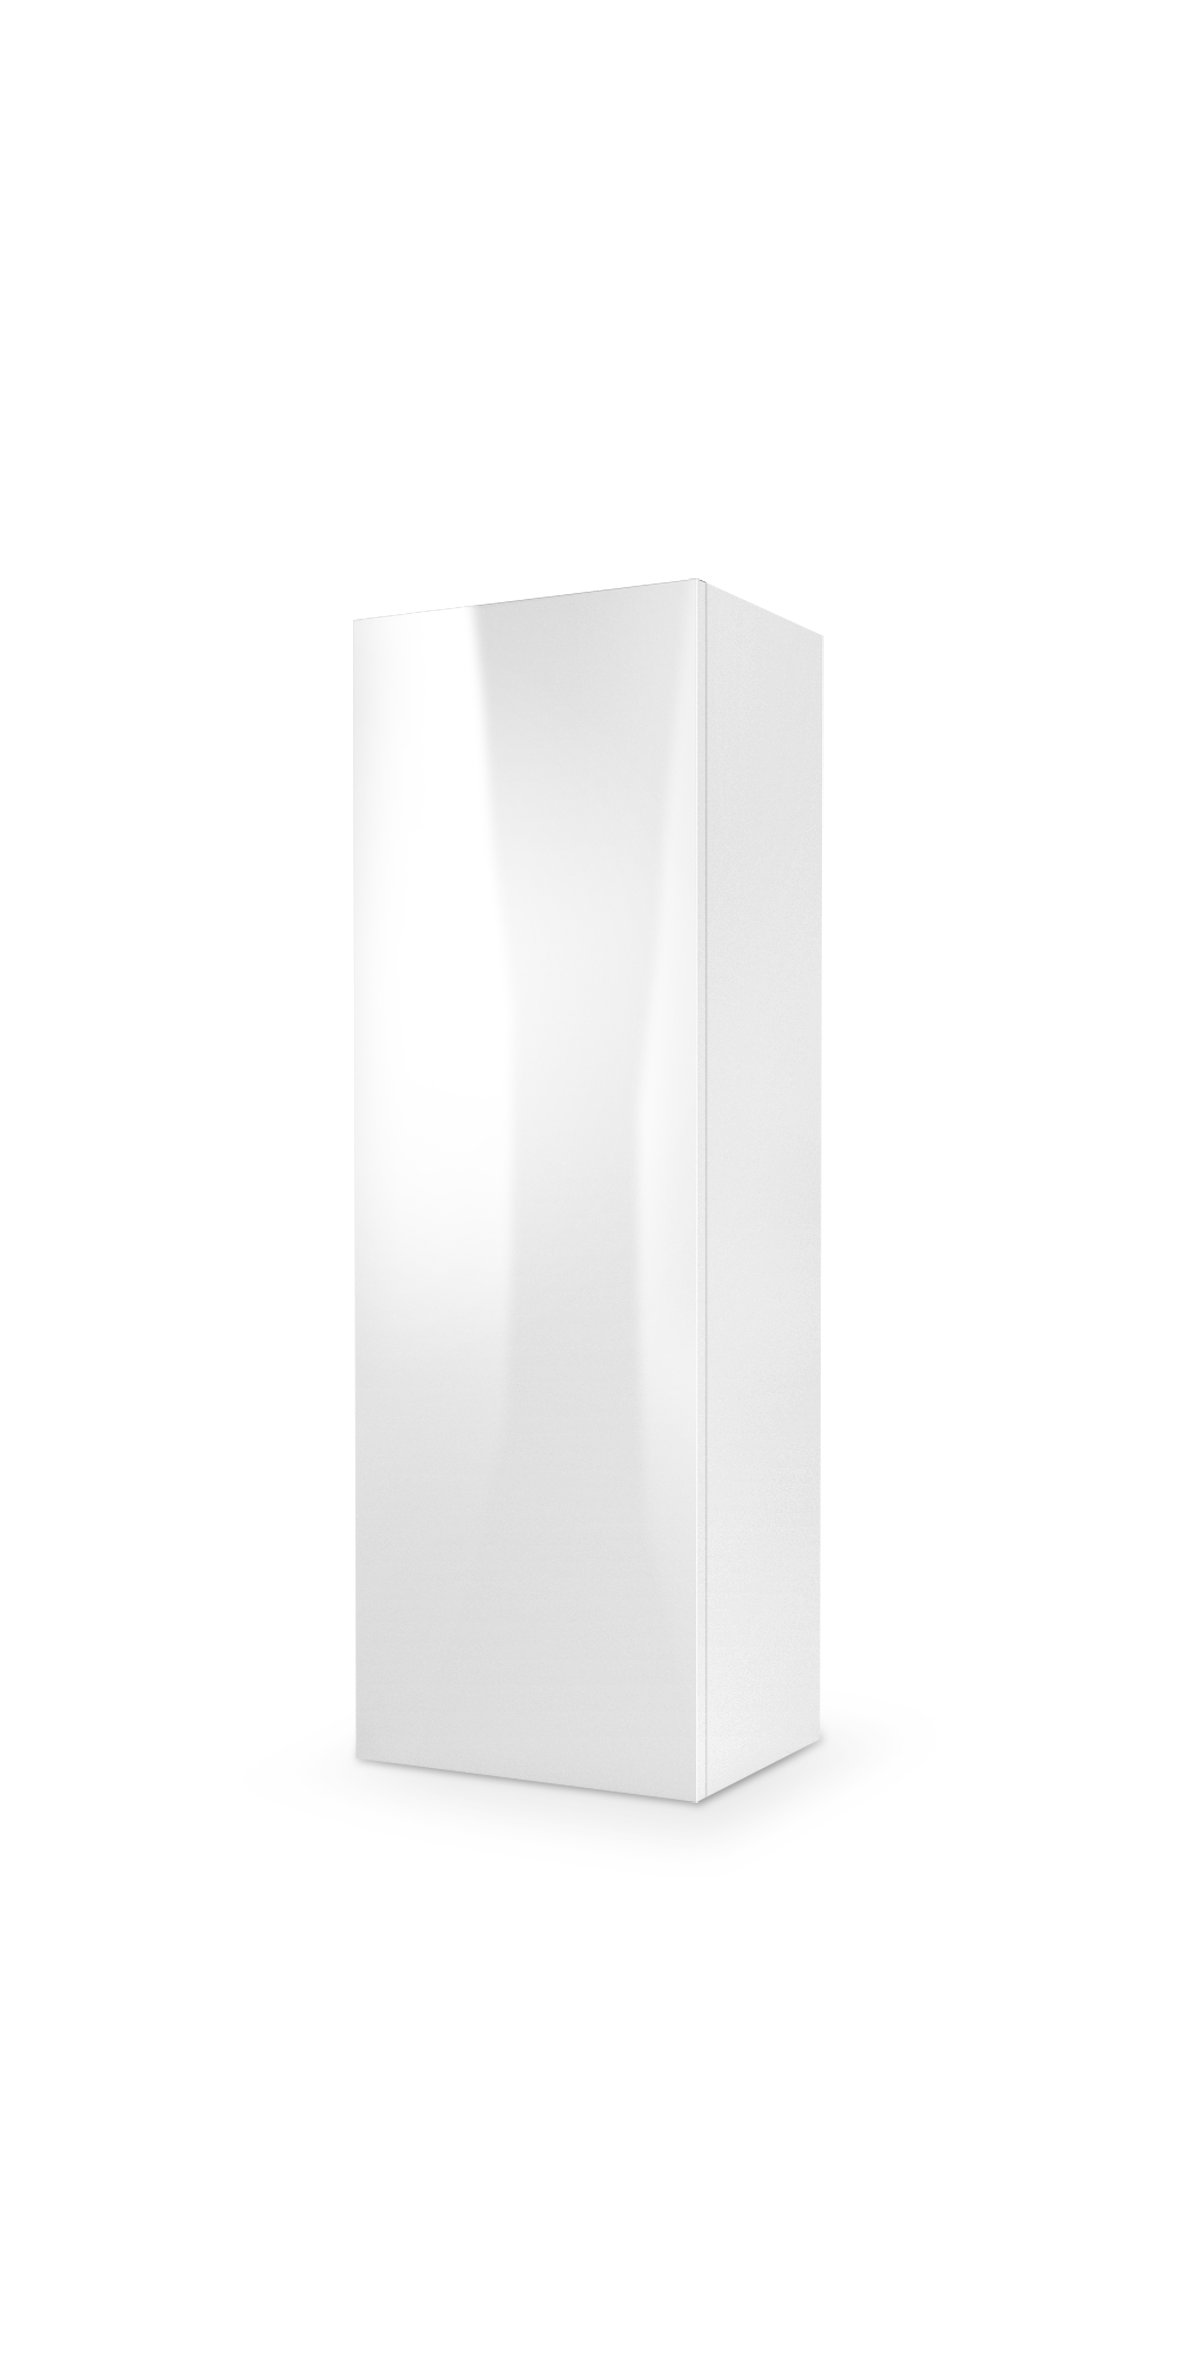 Cabinet suspendat din pal si MDF, cu 1 usa Livo S-120 White, l40xA30xH120 cm somproduct.ro